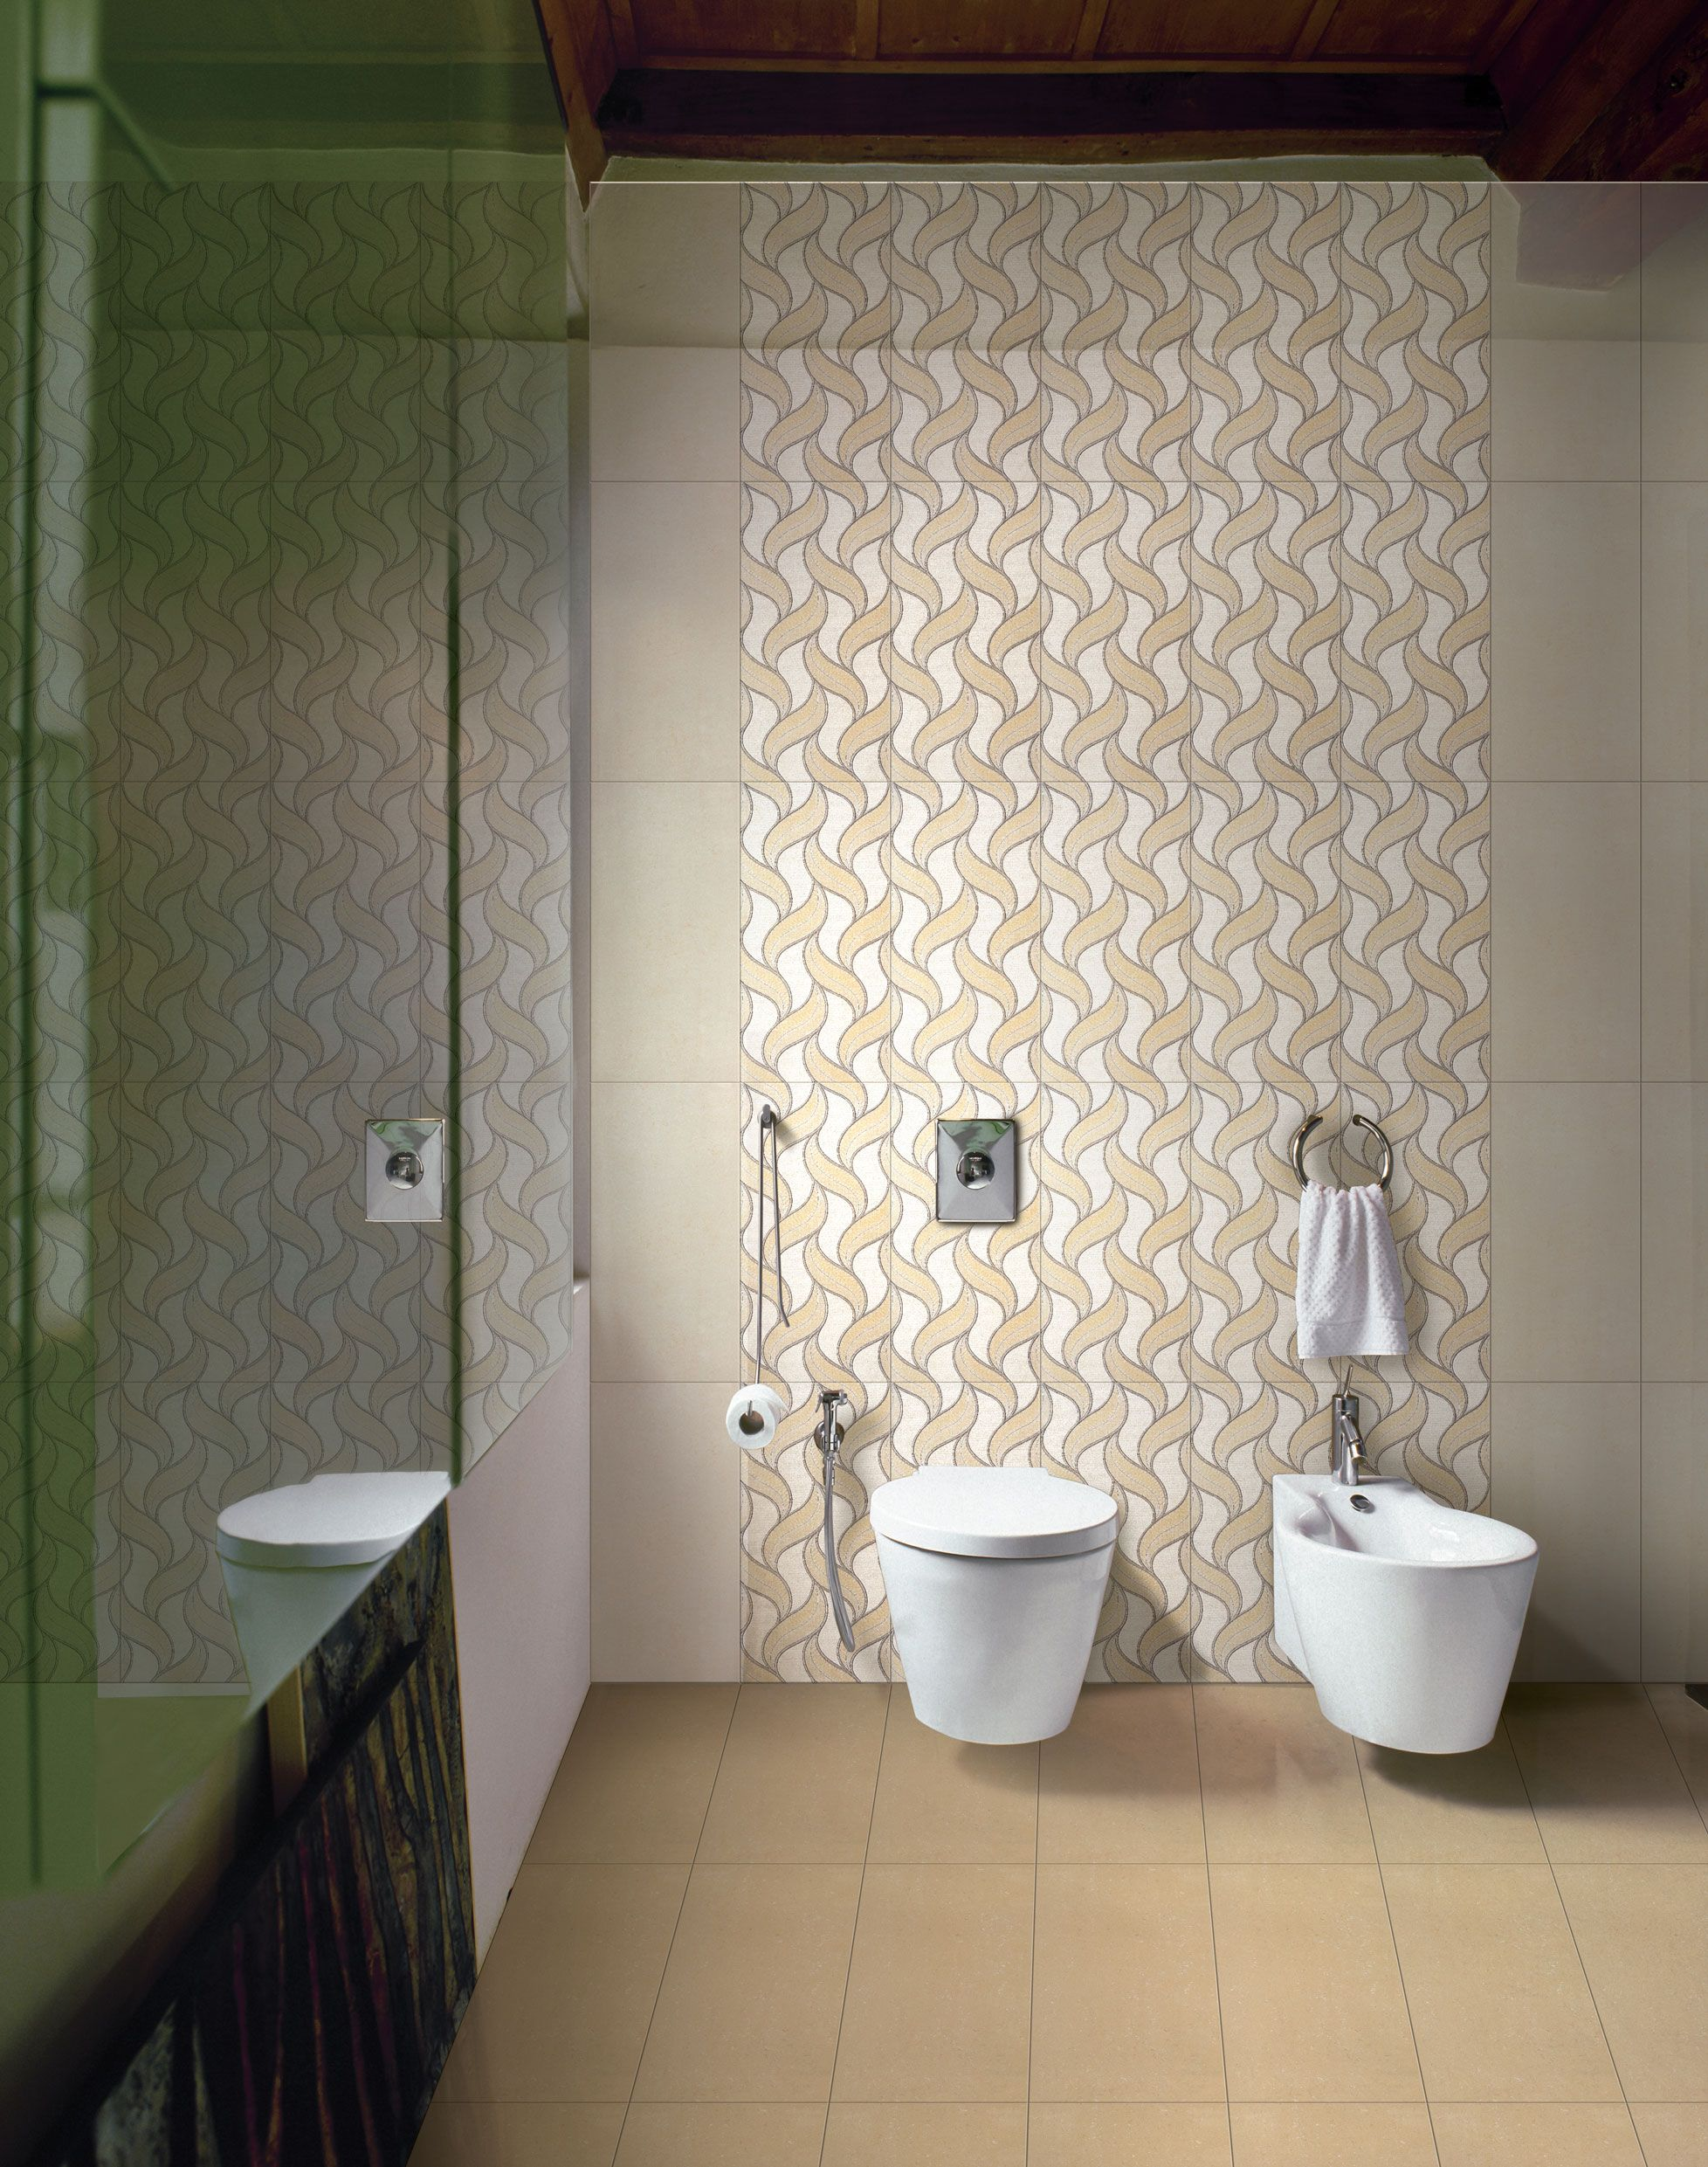 Buy designer floor wall tiles for bathroom bedroom kitchen living room office vitrified Room floor design